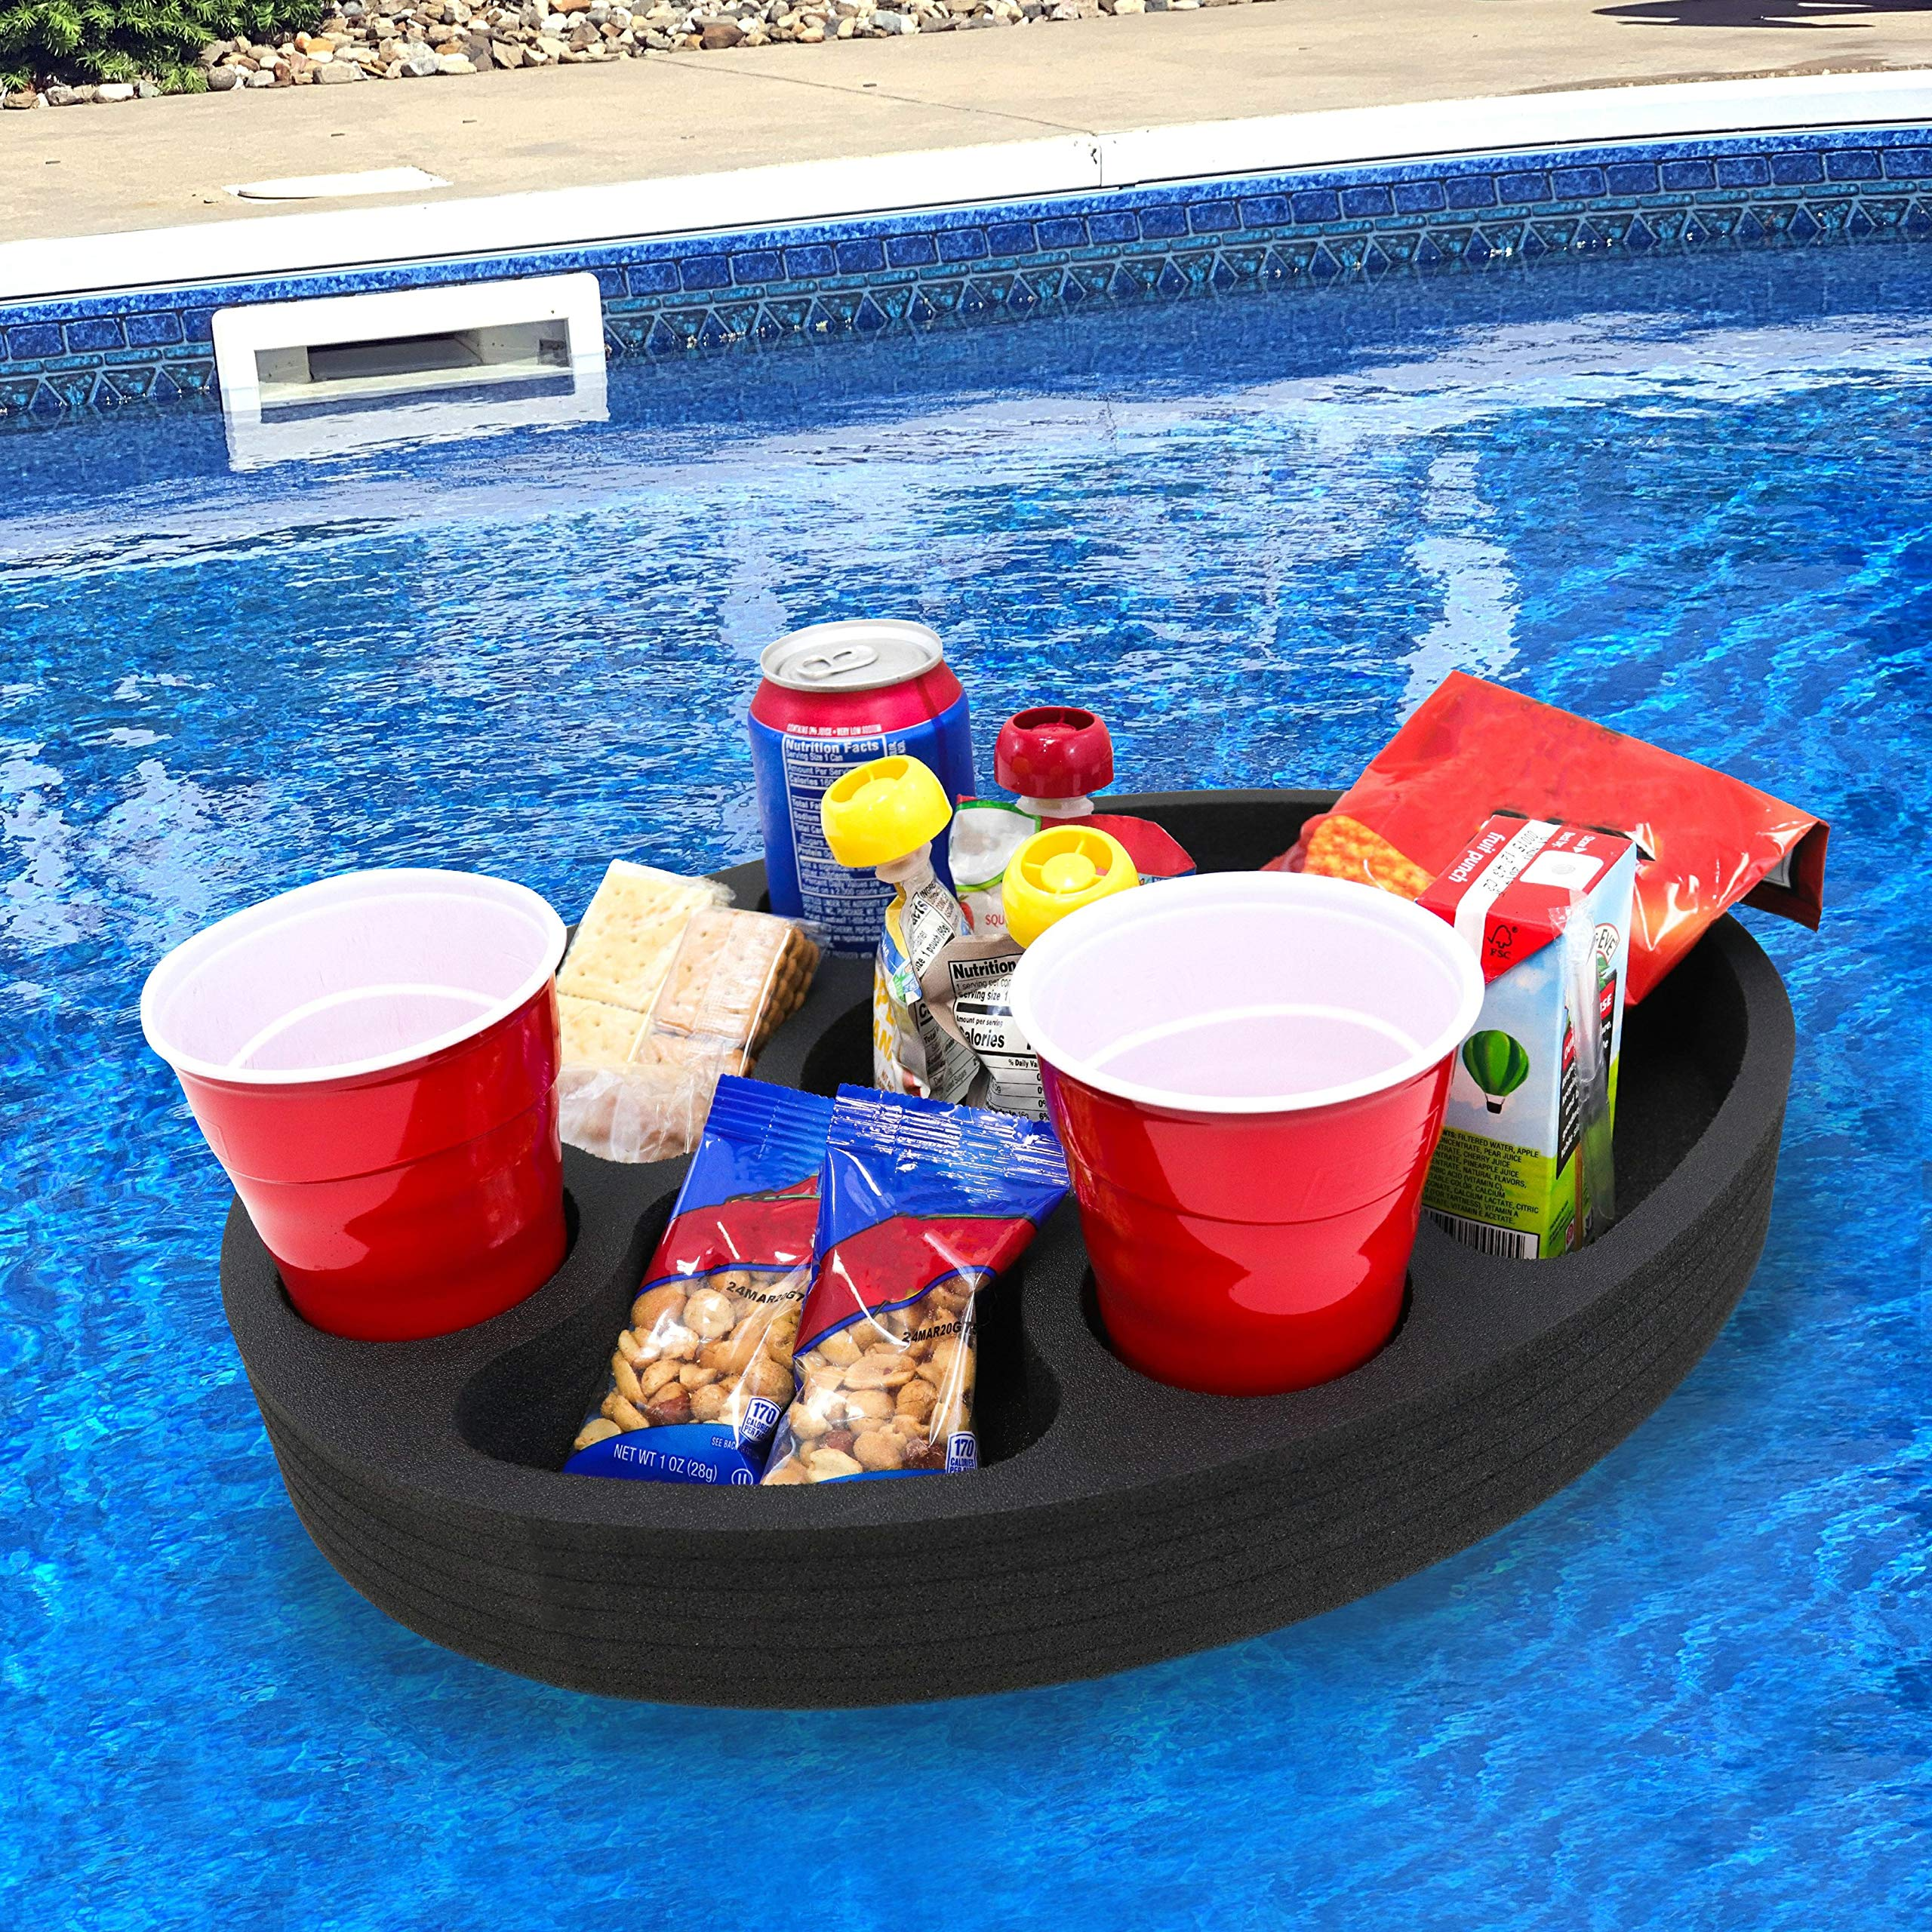 Polar Whale Floating Mini Bar Drink Holder Refreshment Table Tray for Pool or Beach Party Float Lounge Durable Foam 17 Inches Large 7 Compartments UV Resistant Made in USA by Polar Whale